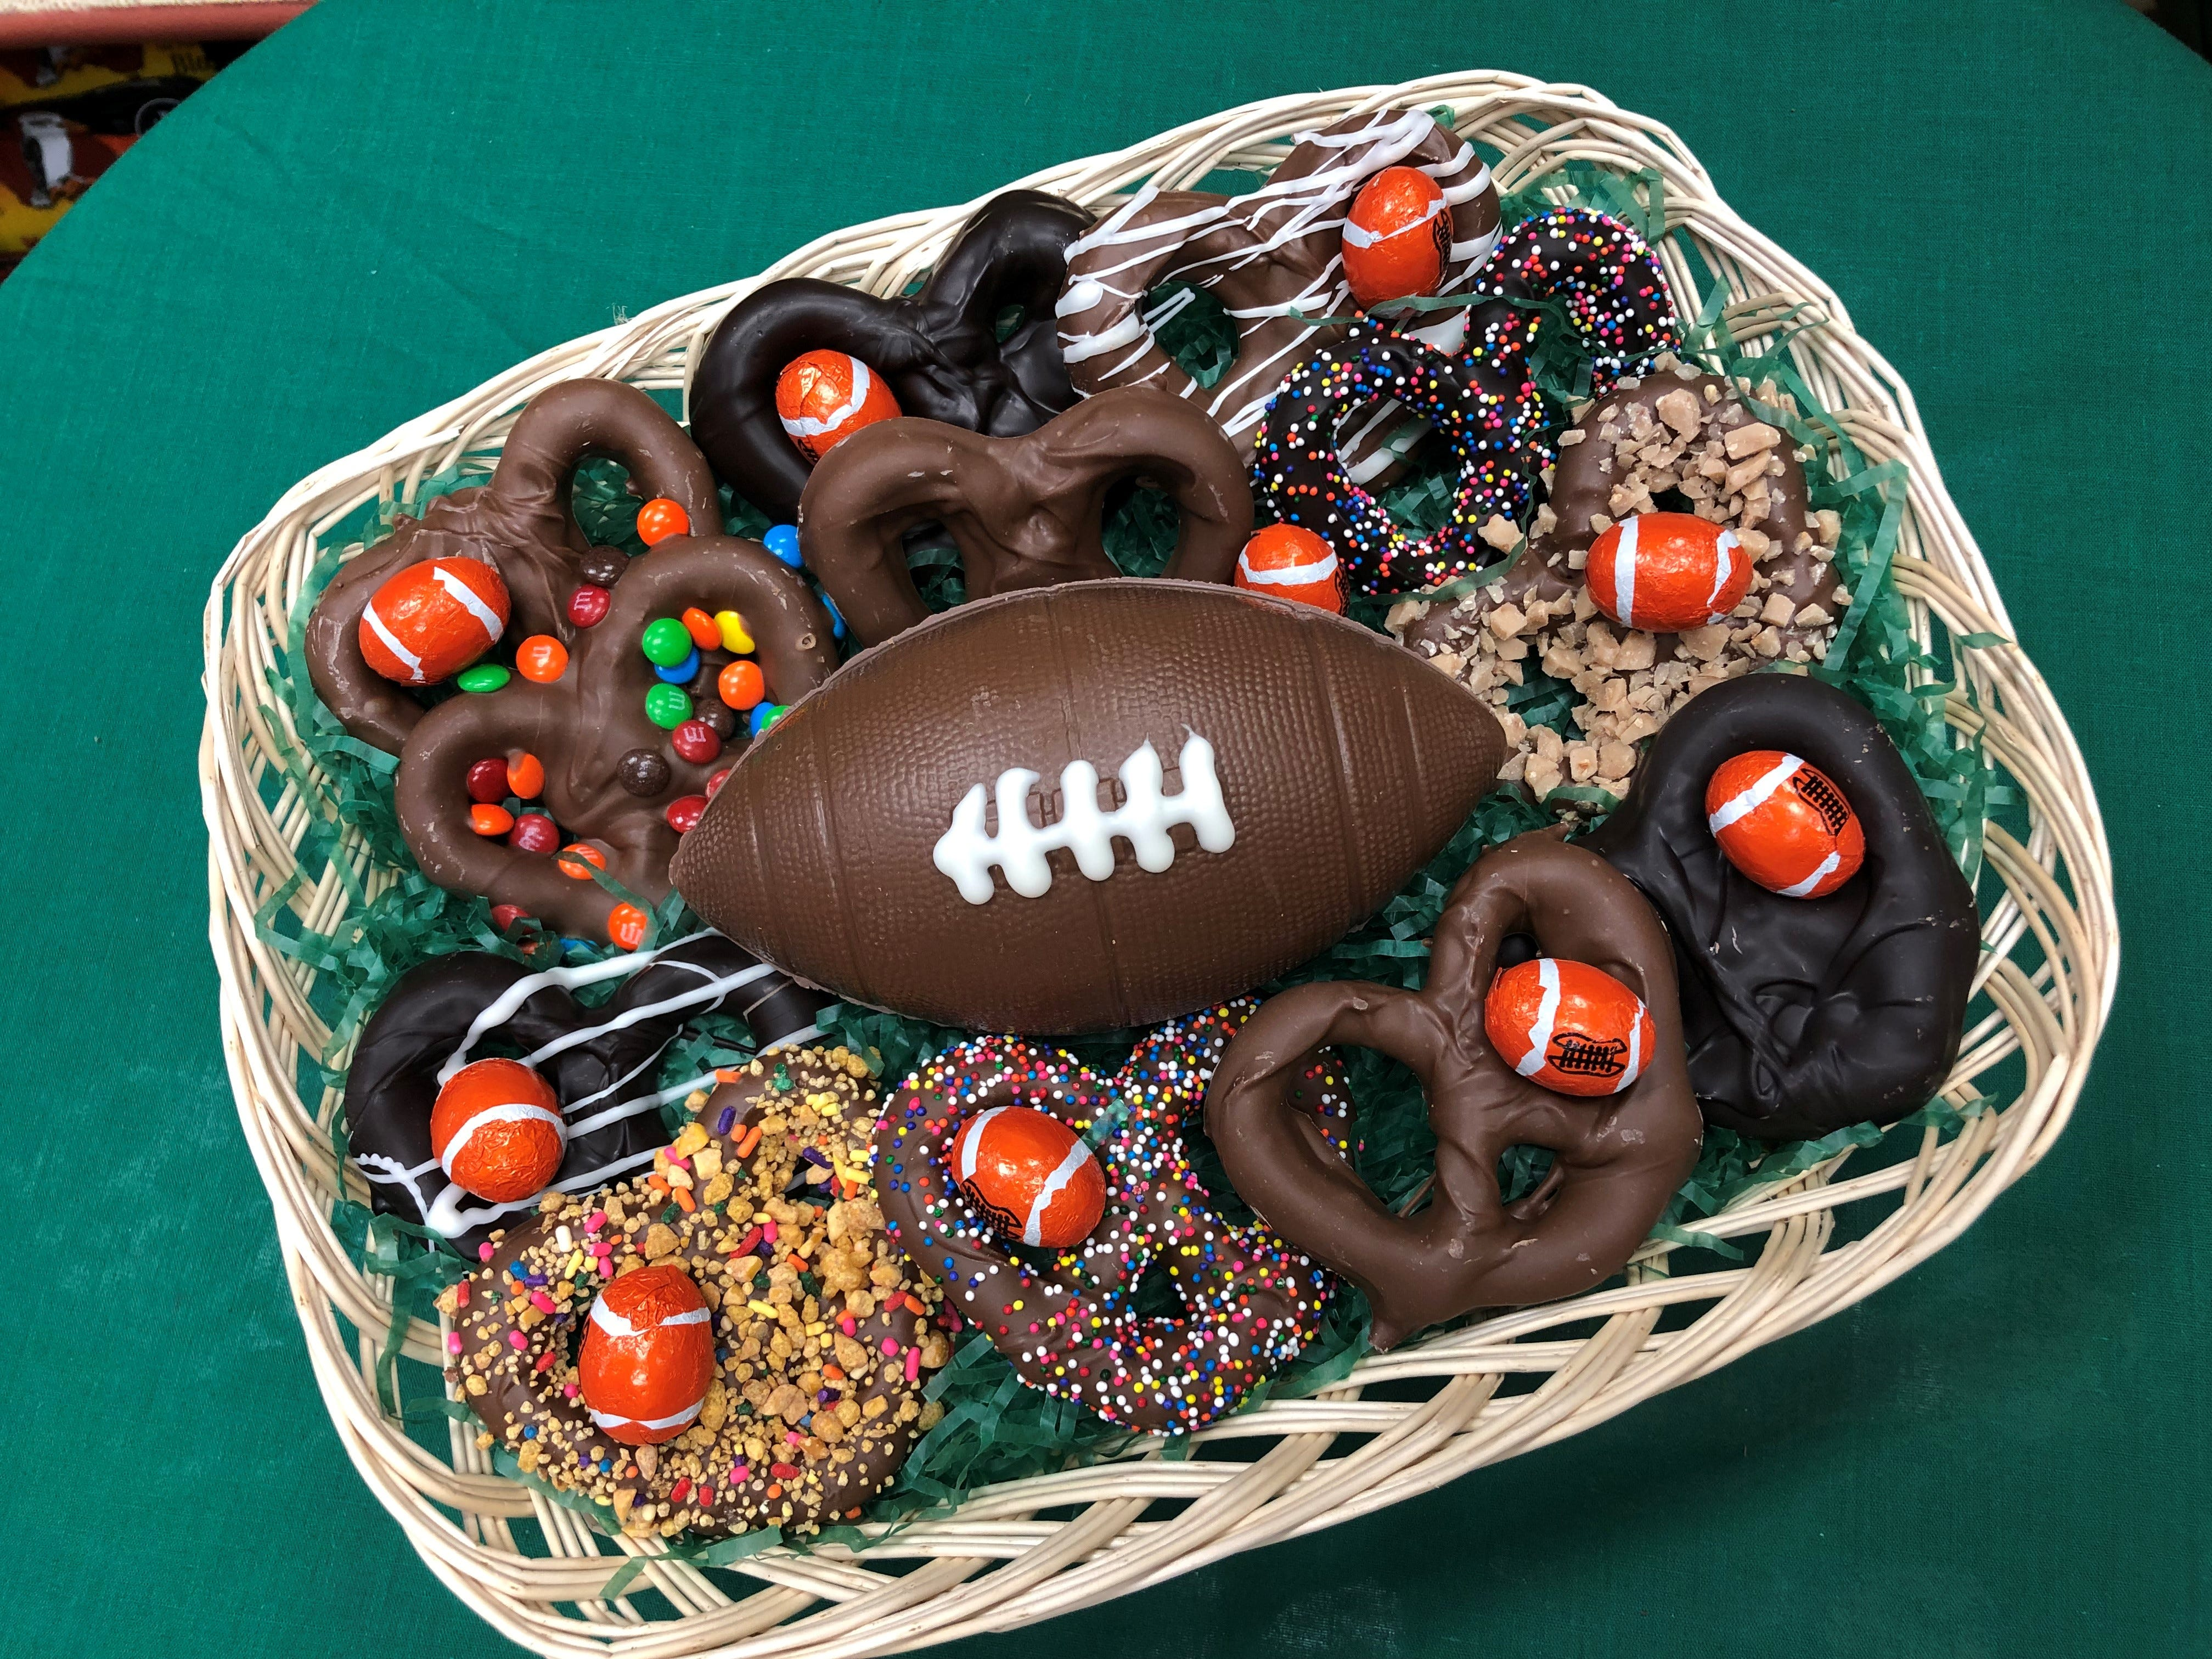 A football platter from Suzi's Sweet Shoppe in Middletown.